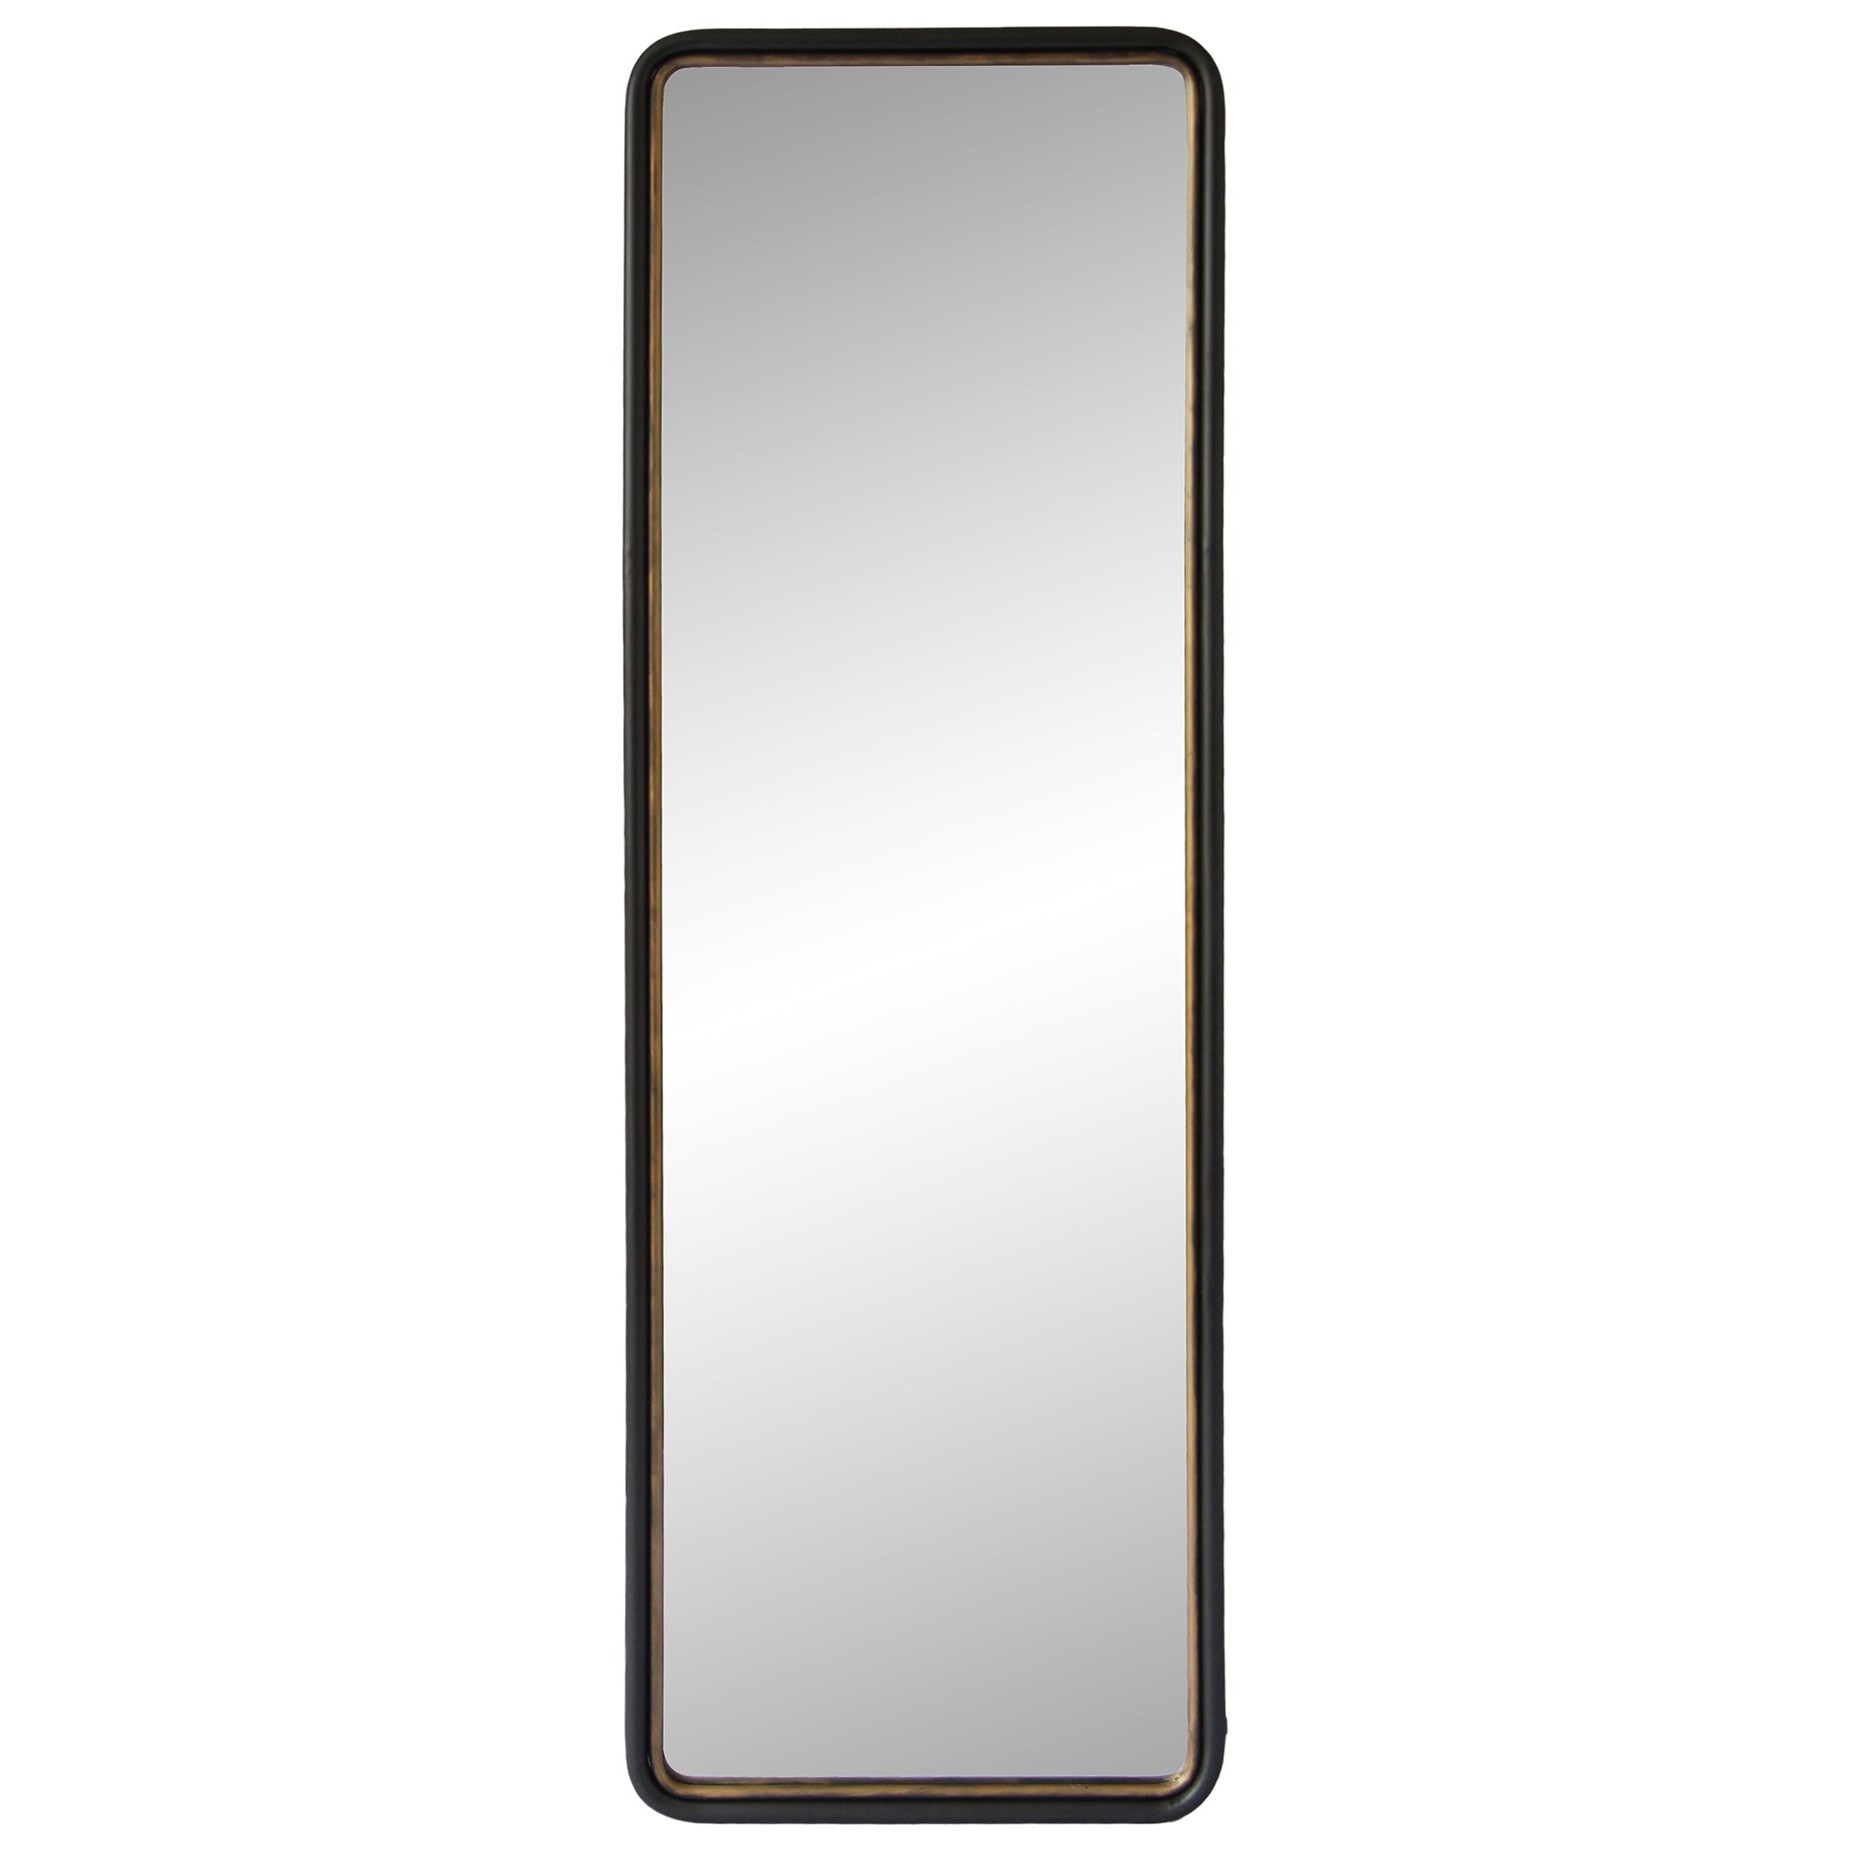 Mirrors and Screens Sax Tall Mirror with Brushed Gold Details by Moe's Home Collection at Reid's Furniture